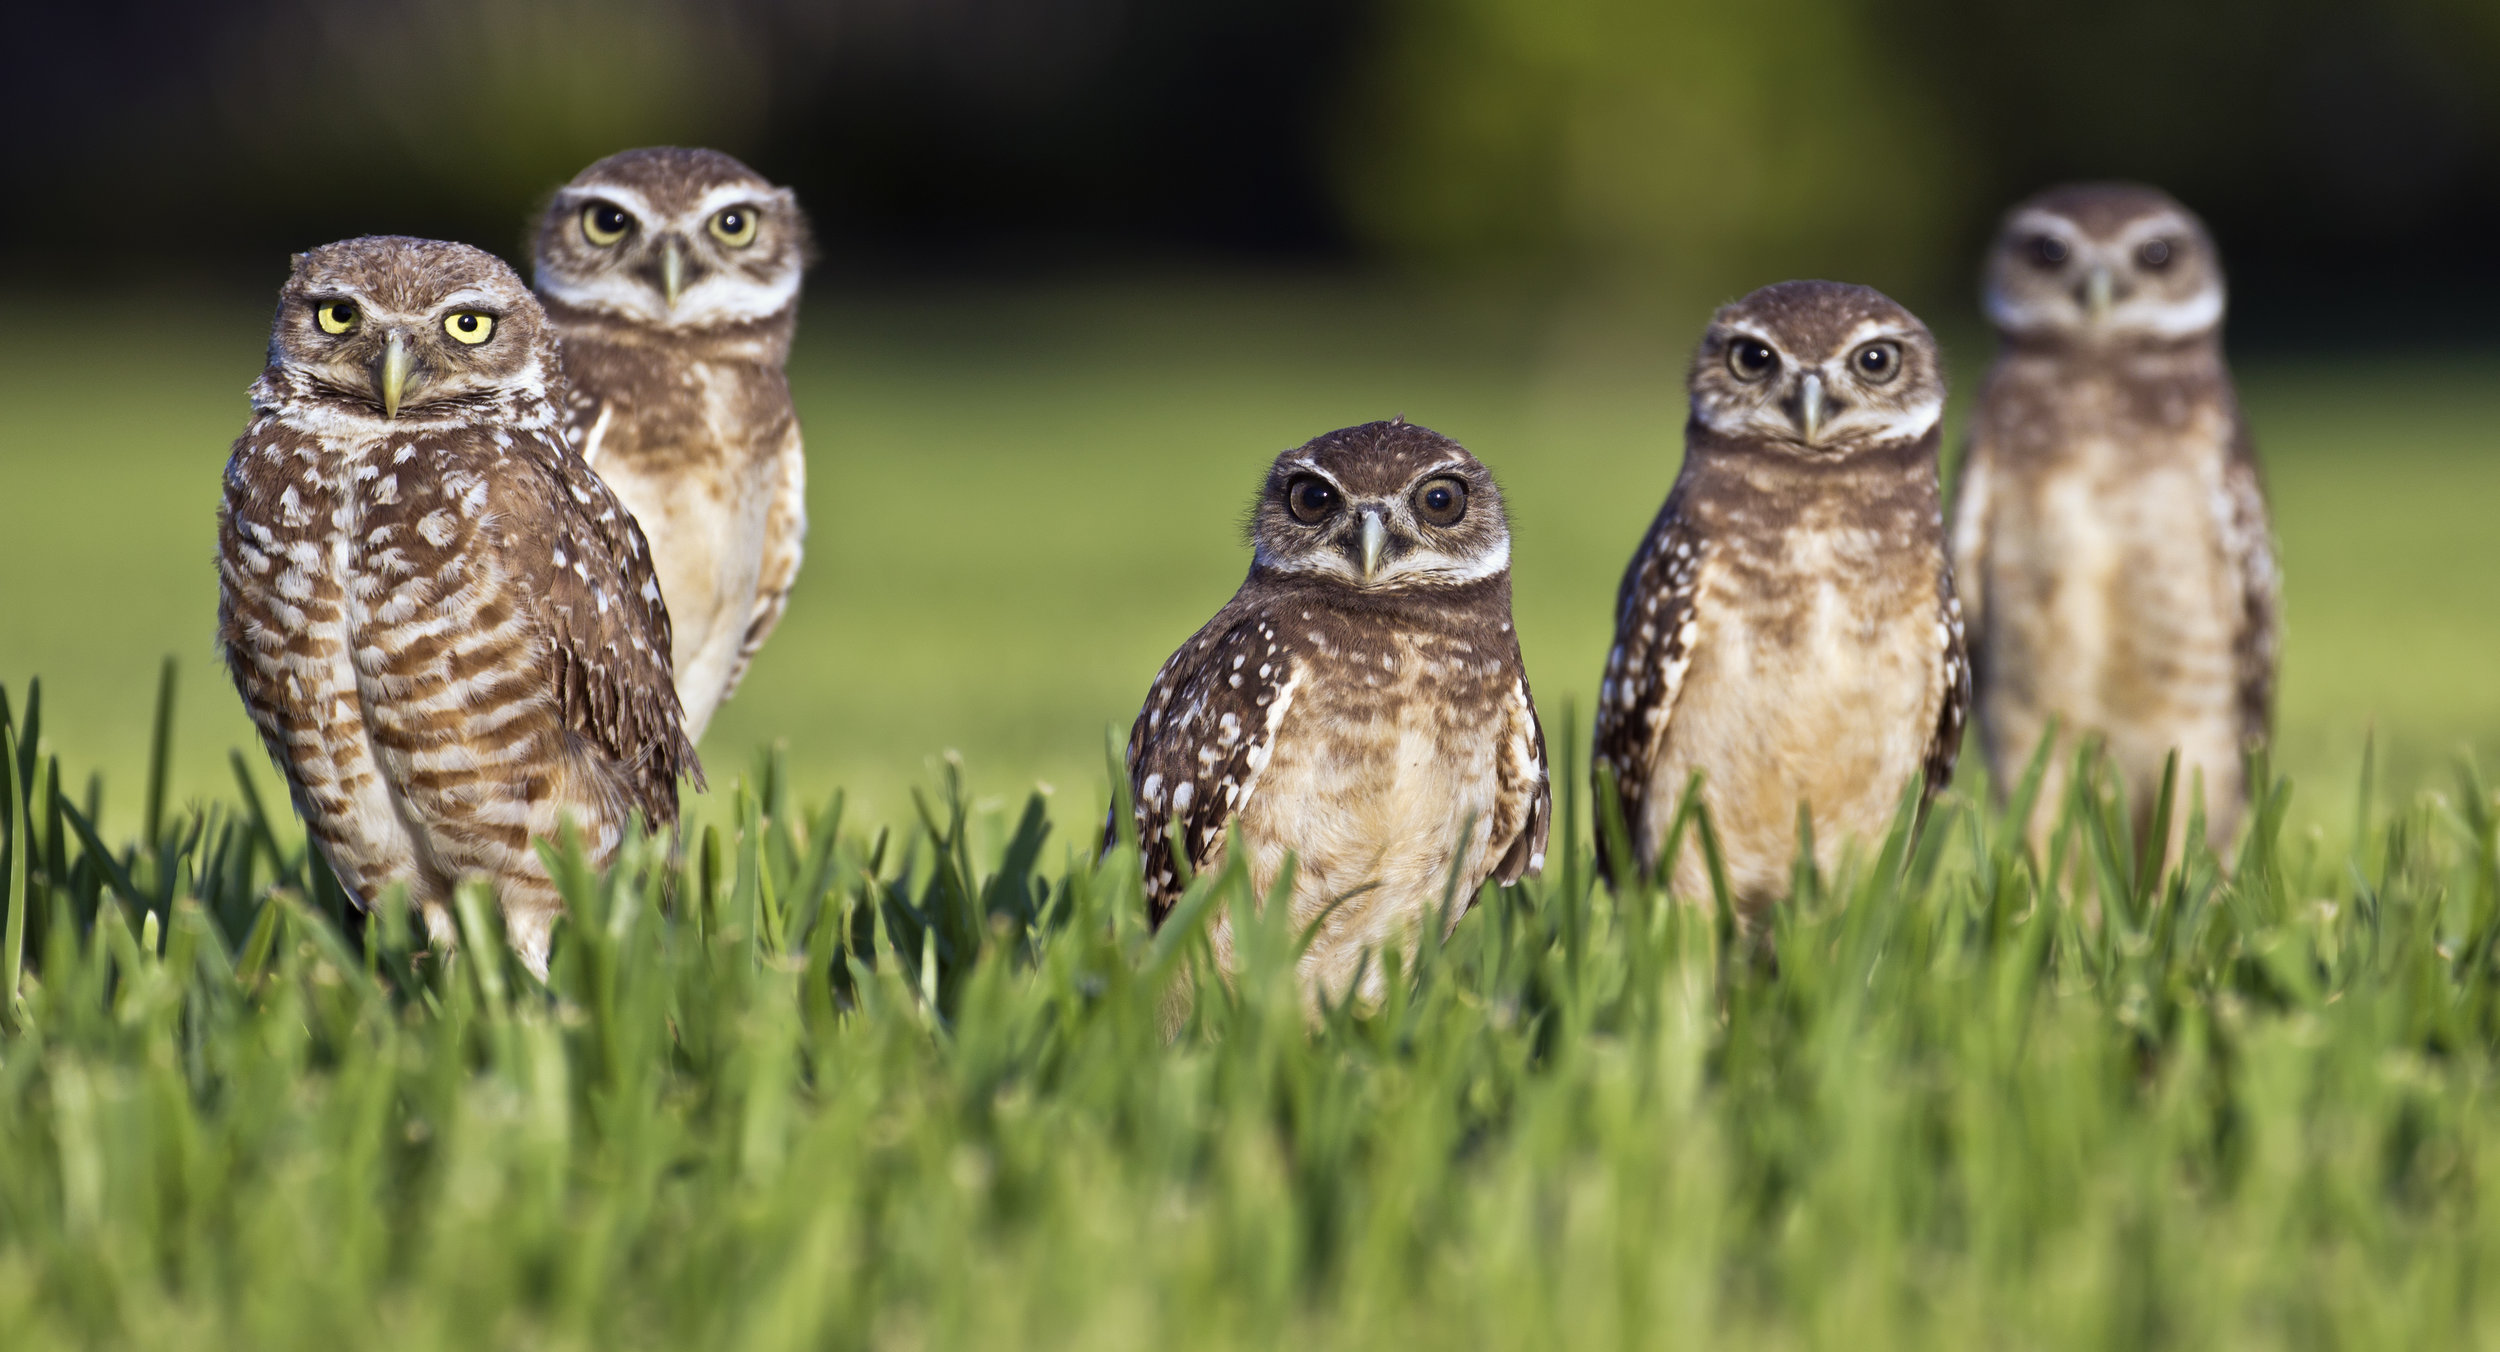 Five Burrowing Owls, Floridana, Florida. by Travelwayoflife,  CC BY-SA 2.0